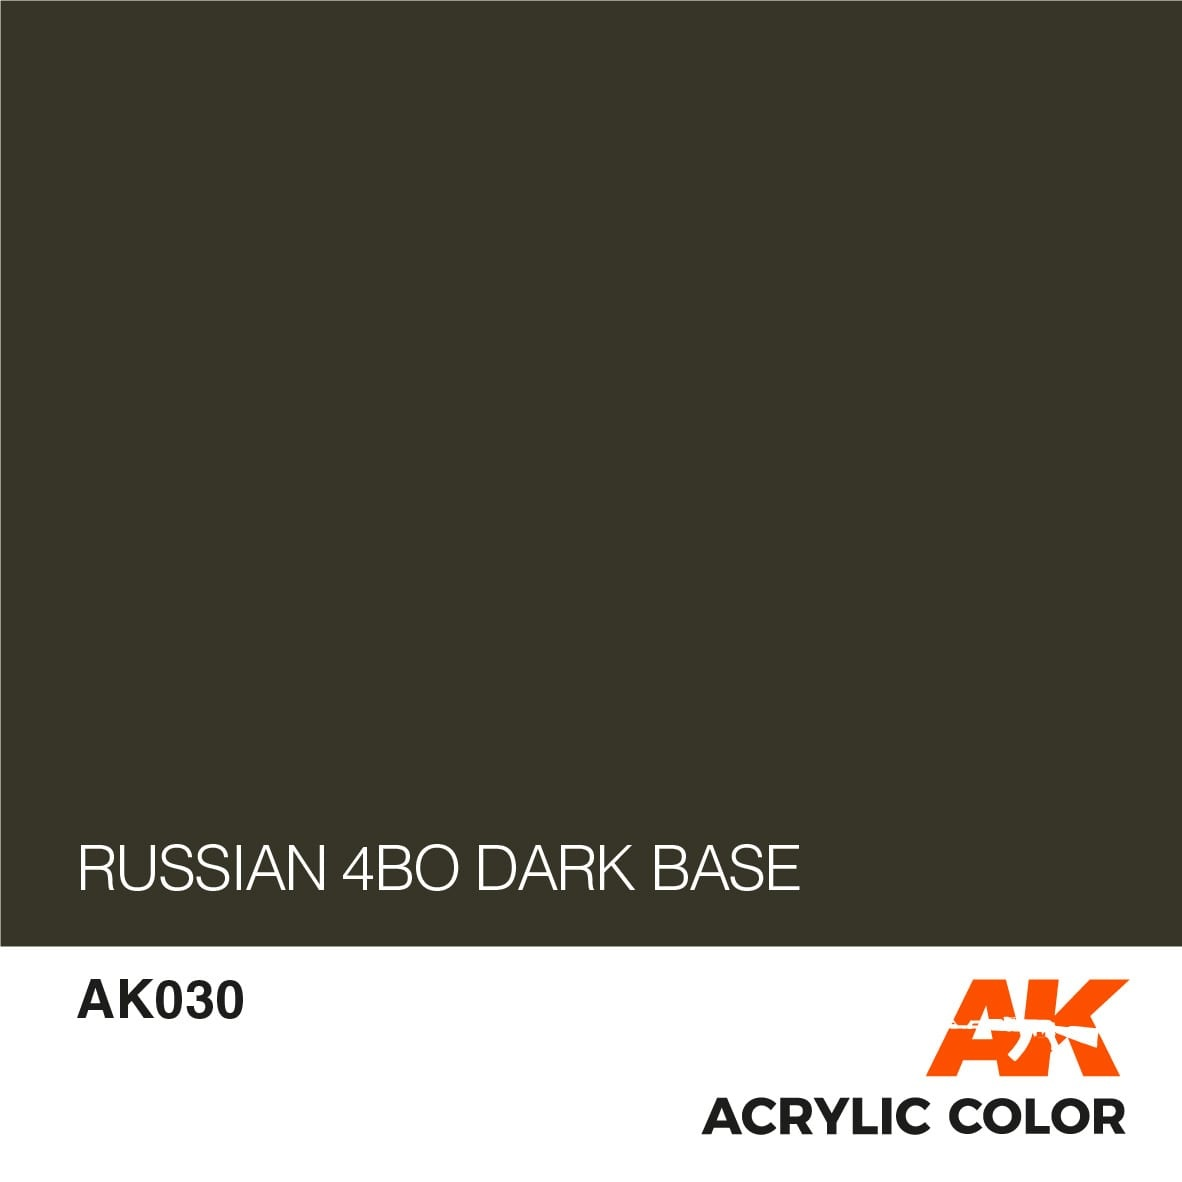 AK-Interactive Russian 4B0 Dark Base - 17ml - AK-Interactive - AK-030